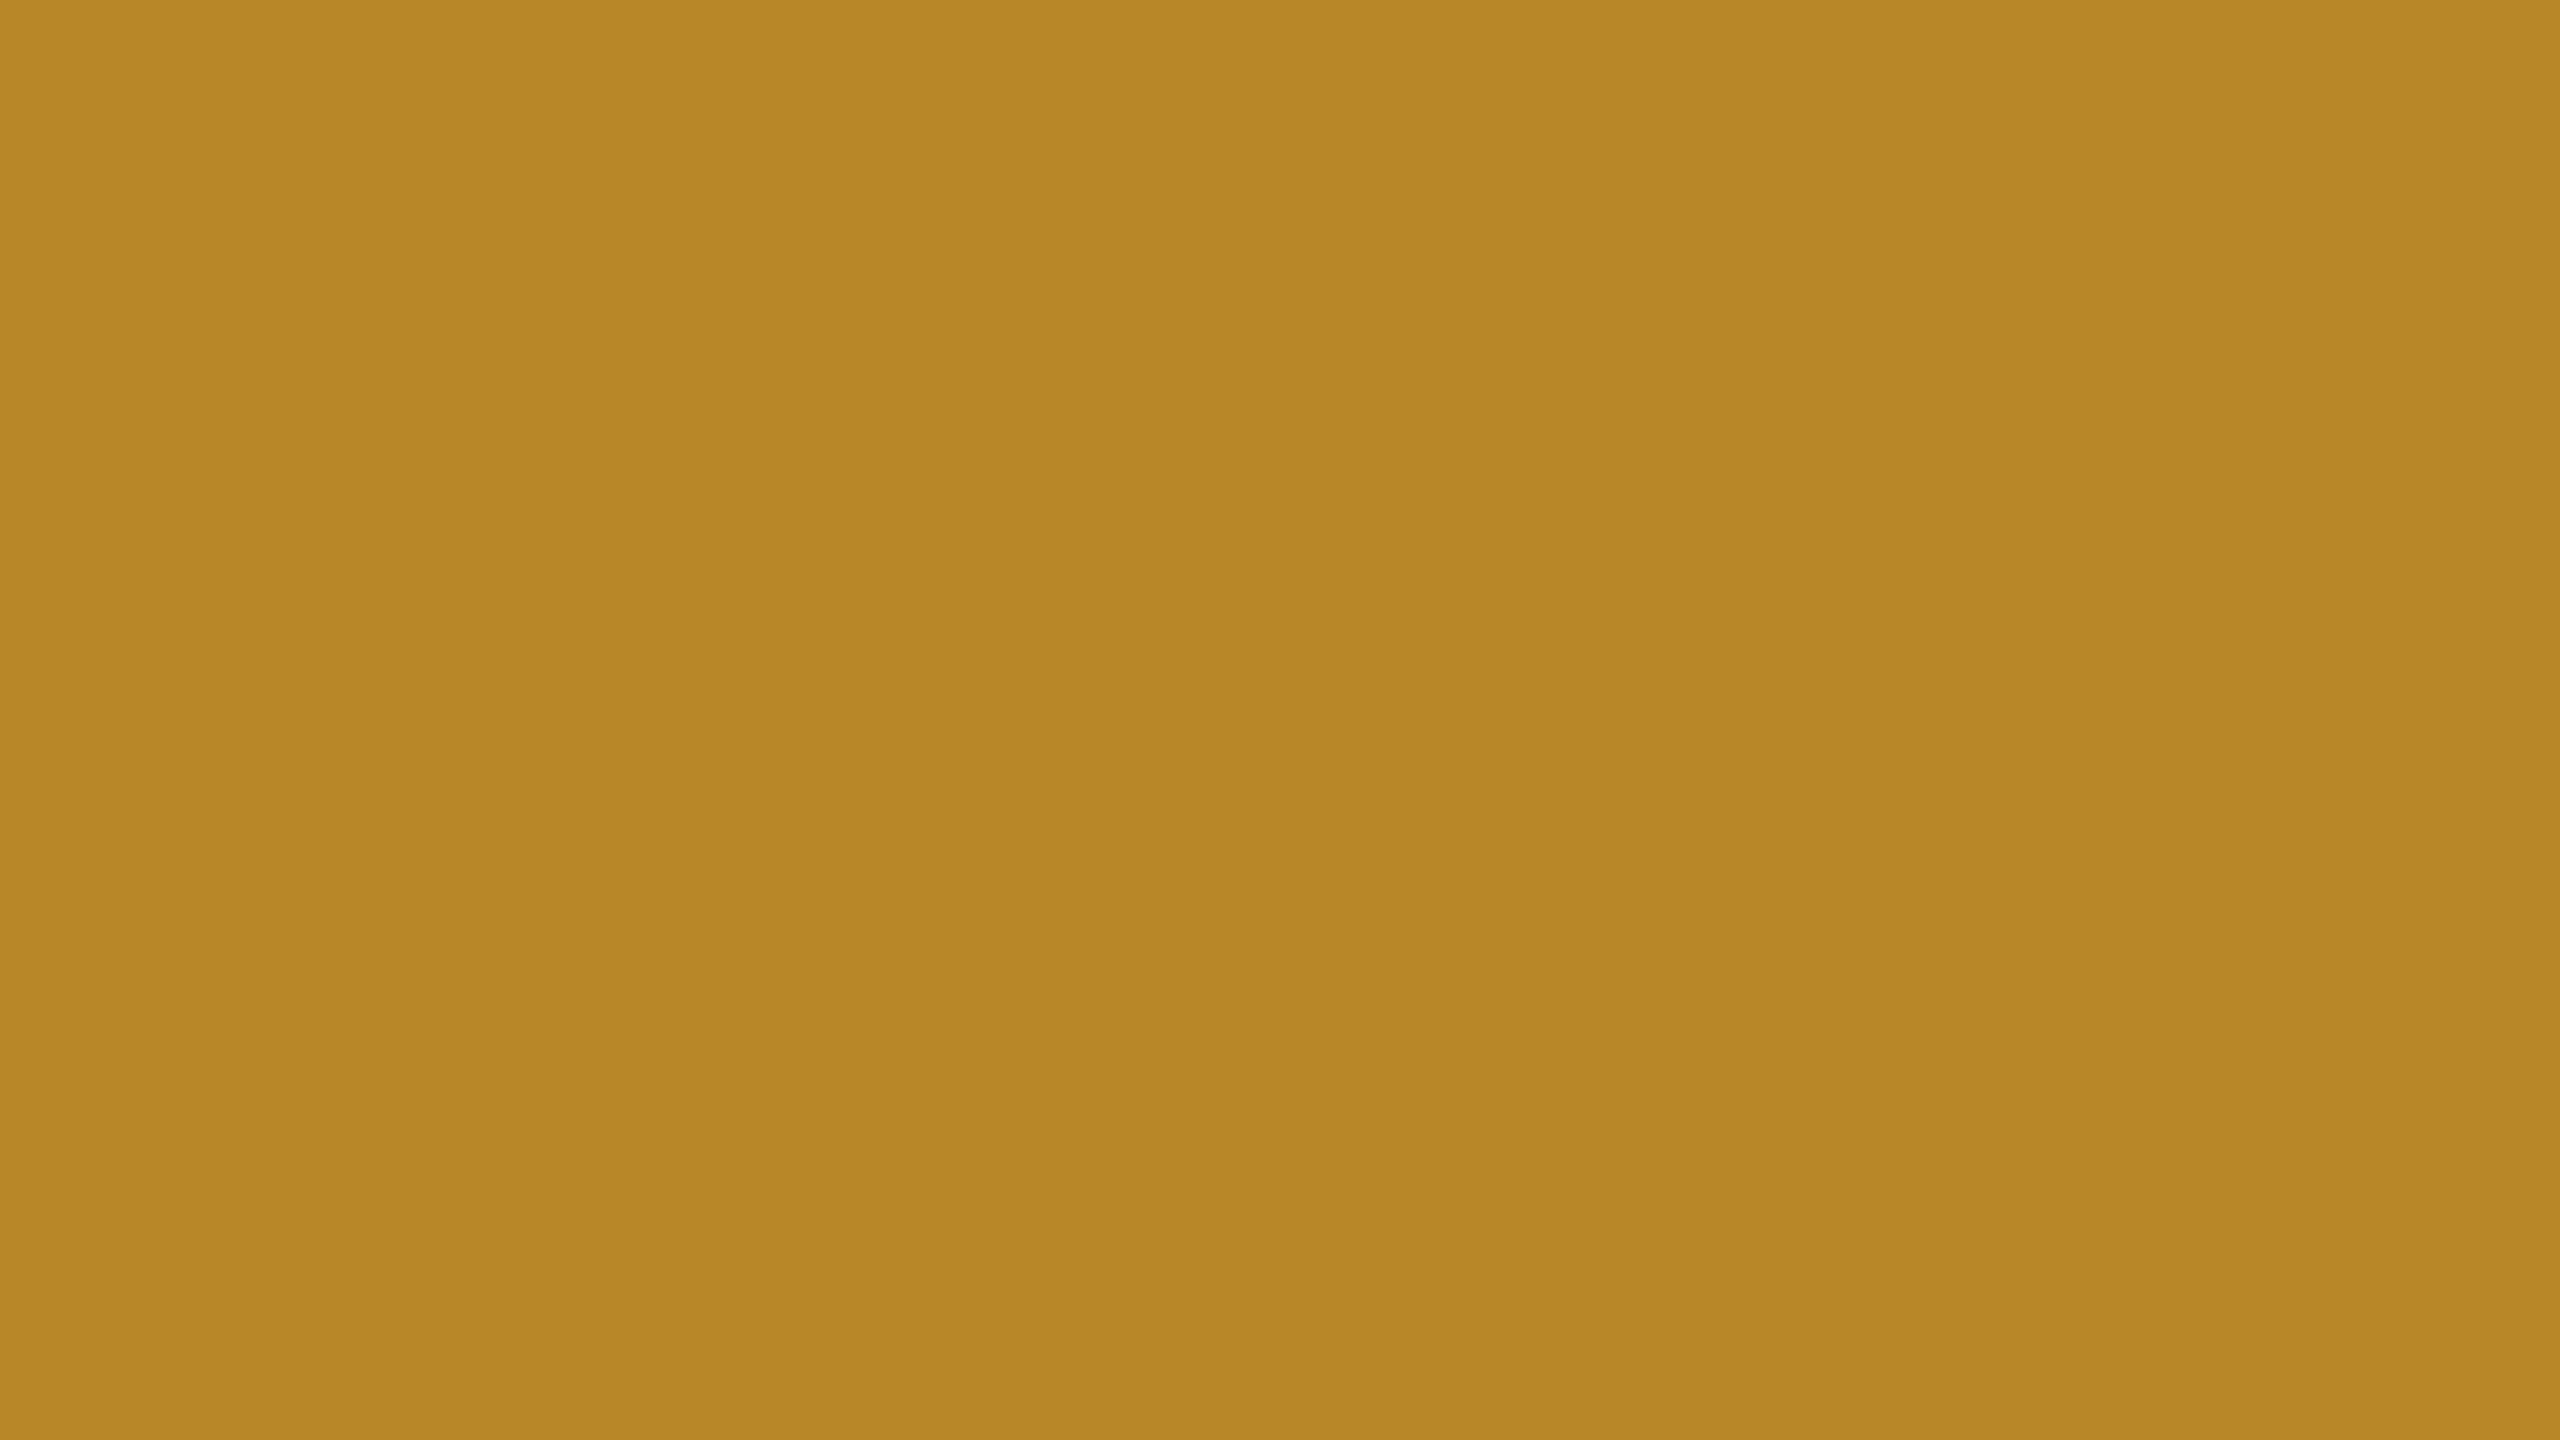 gold color background wallpapersafari